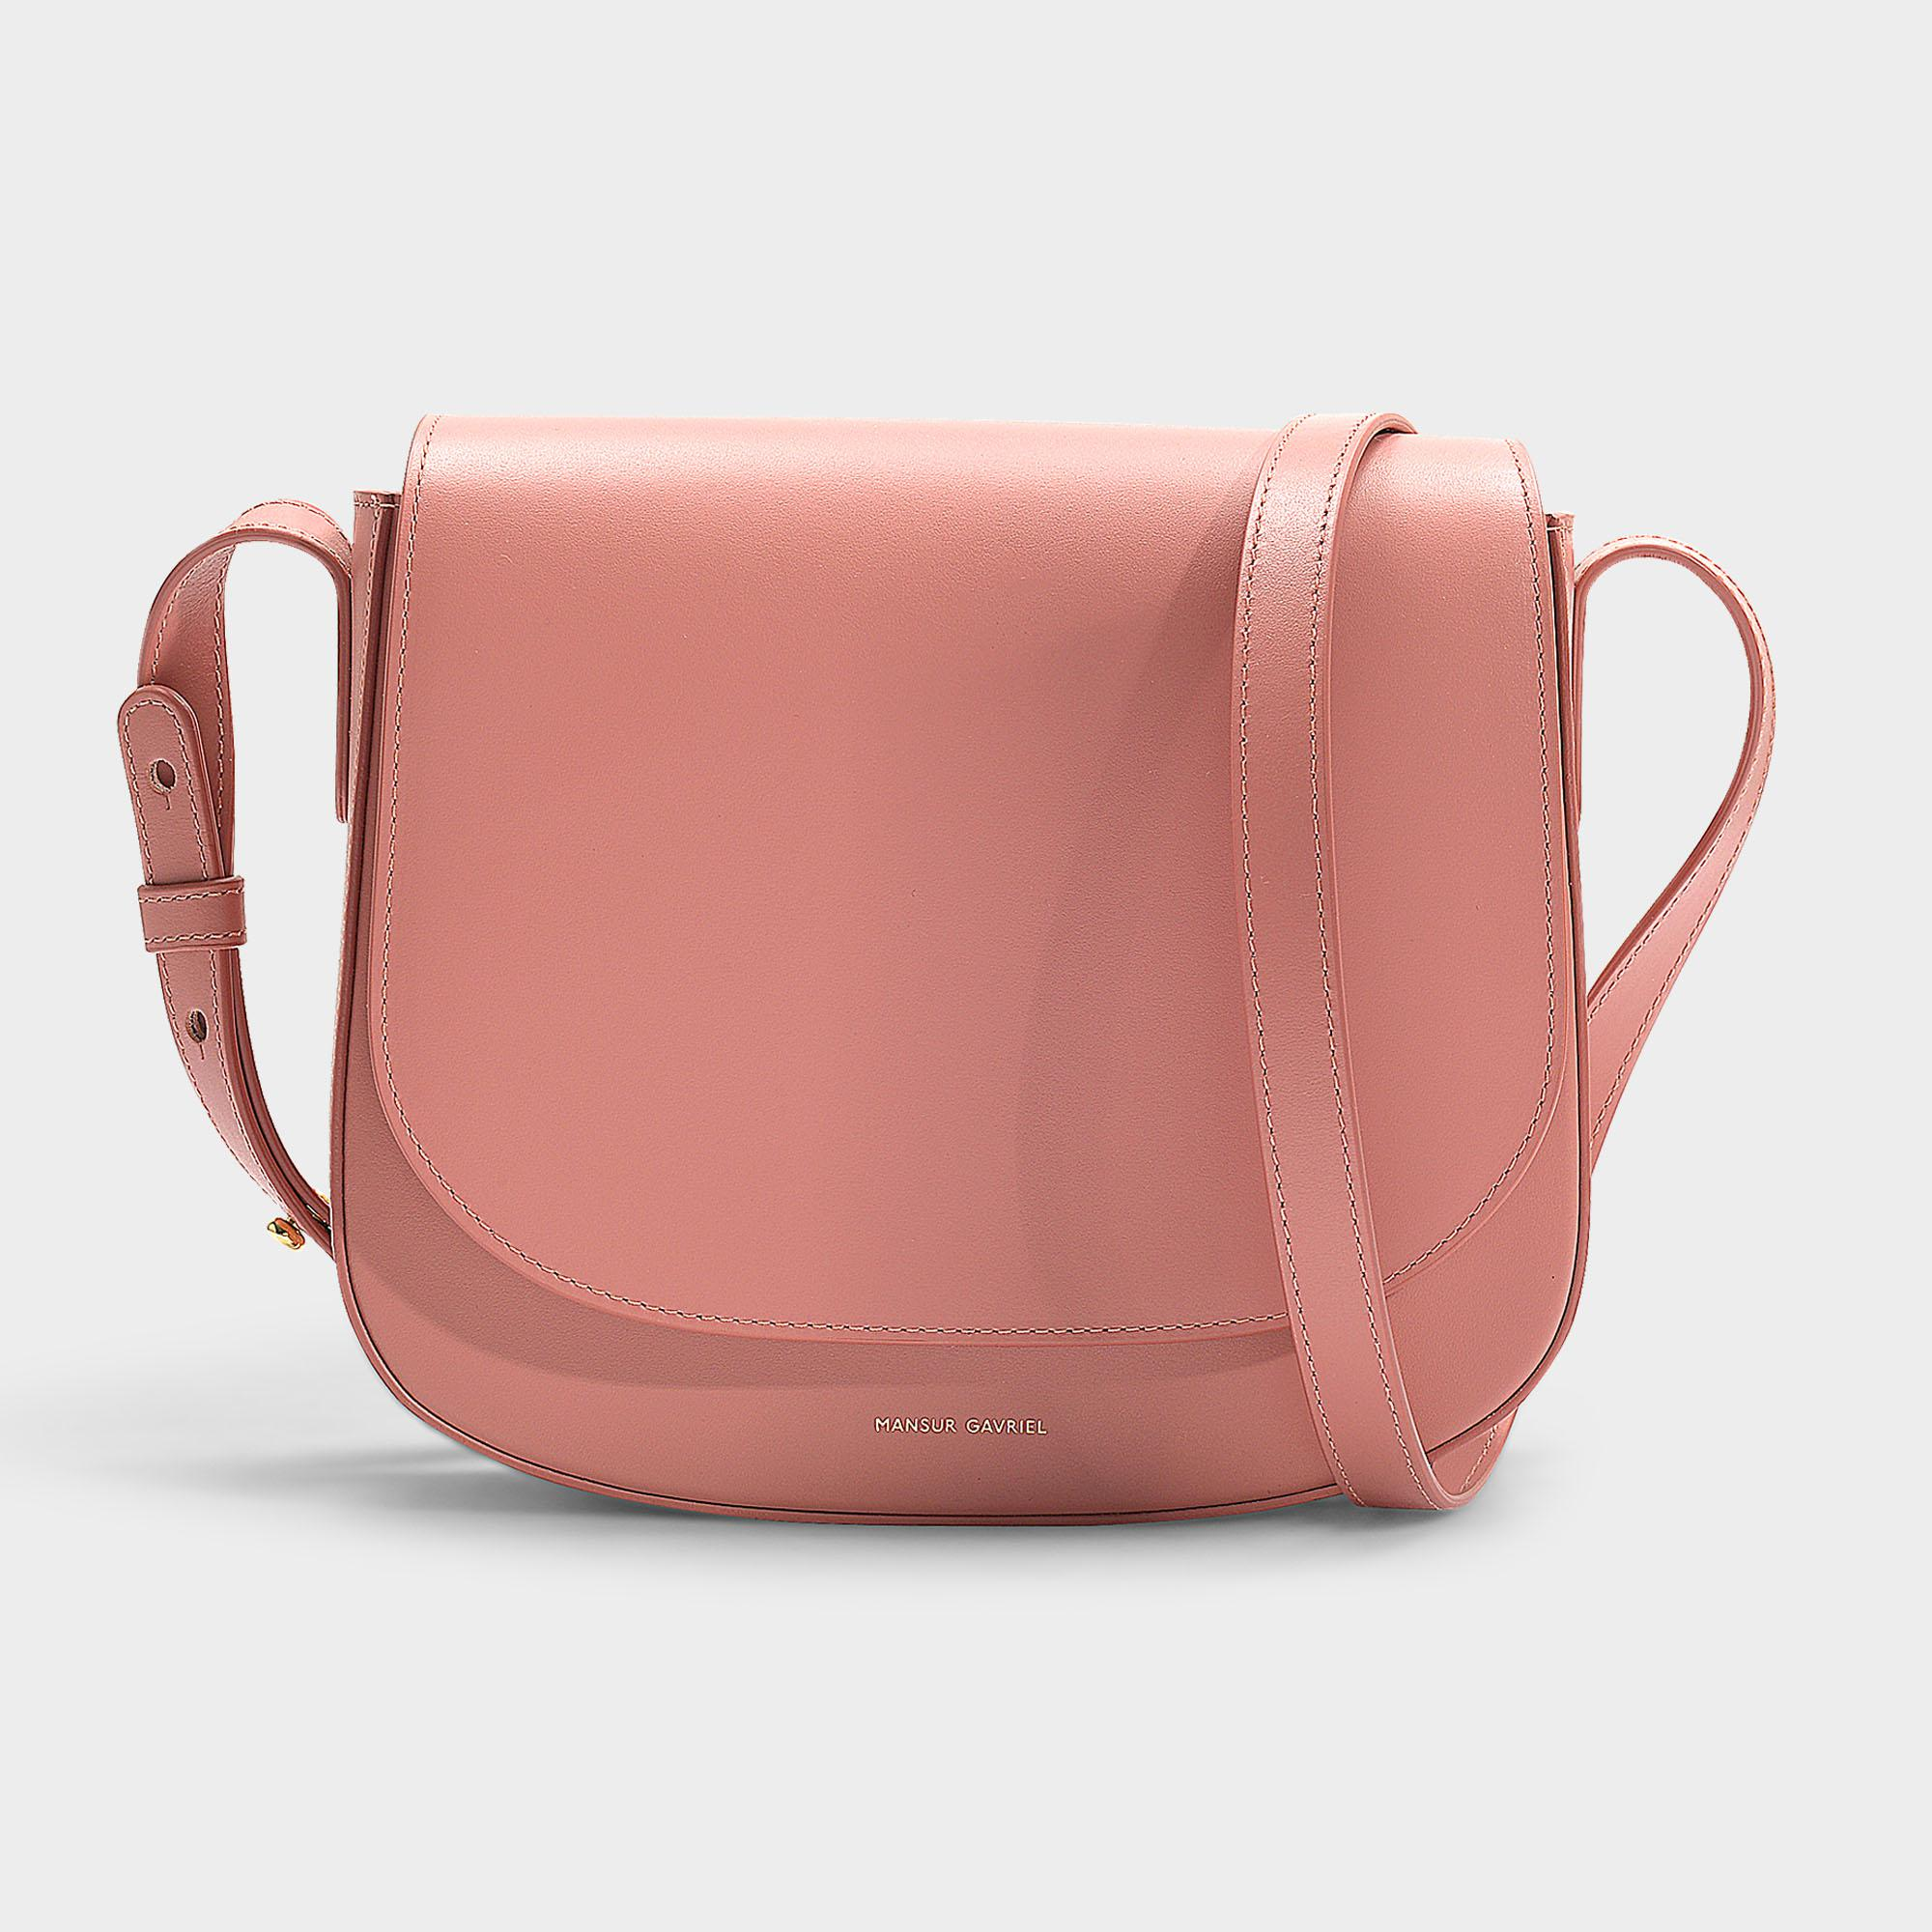 Mansur Gavriel Crossbody Bag In Blush Calfskin And Canvas in Pink - Lyst 34615cbc9a